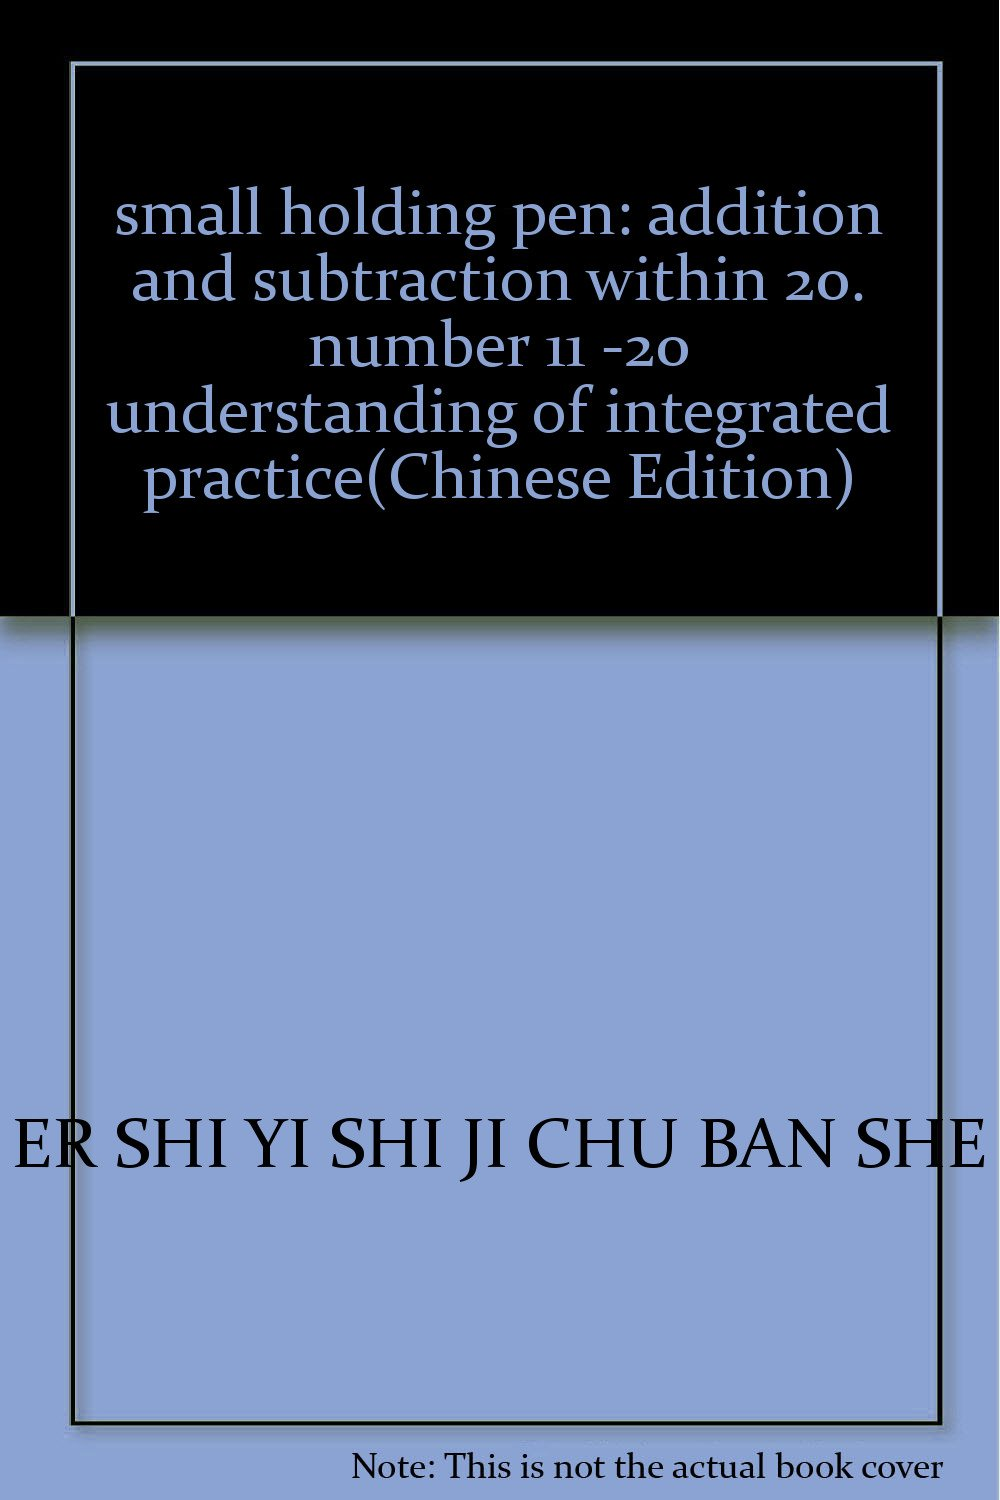 small holding pen: addition and subtraction within 20. number 11 -20 understanding of integrated practice(Chinese Edition) pdf